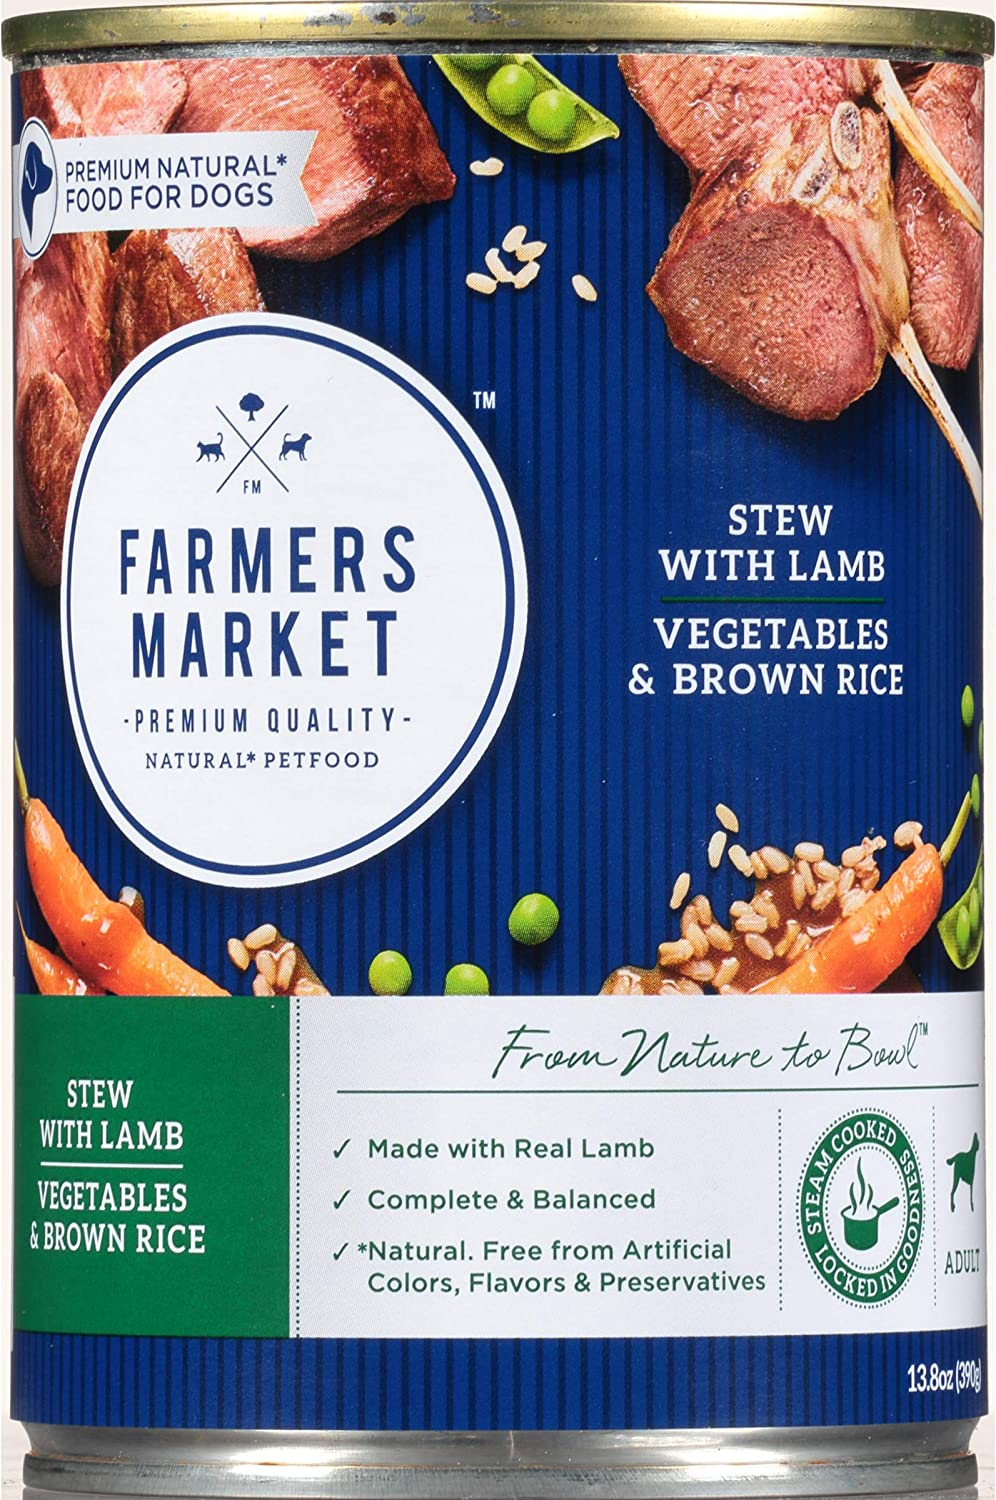 Farmers Market Pet Food Premium Natural Canned Wet Dog Food, 13.8 Oz Can, Lamb With Vegetables & Brown Rice Stew (Case Of 12)